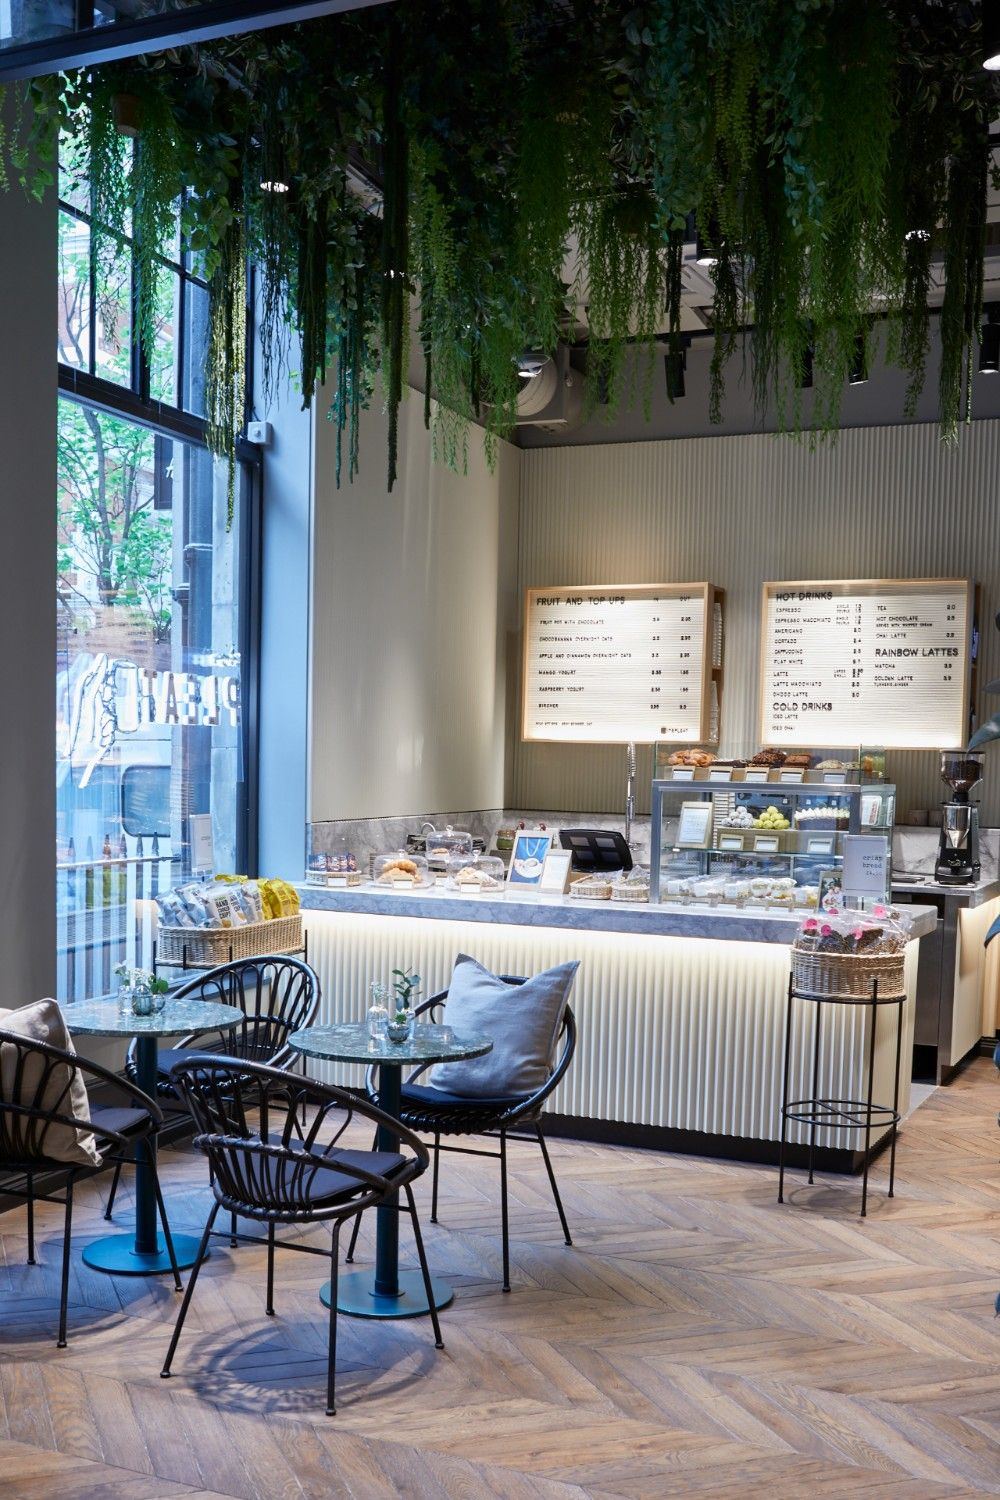 h&m in-store cafe london